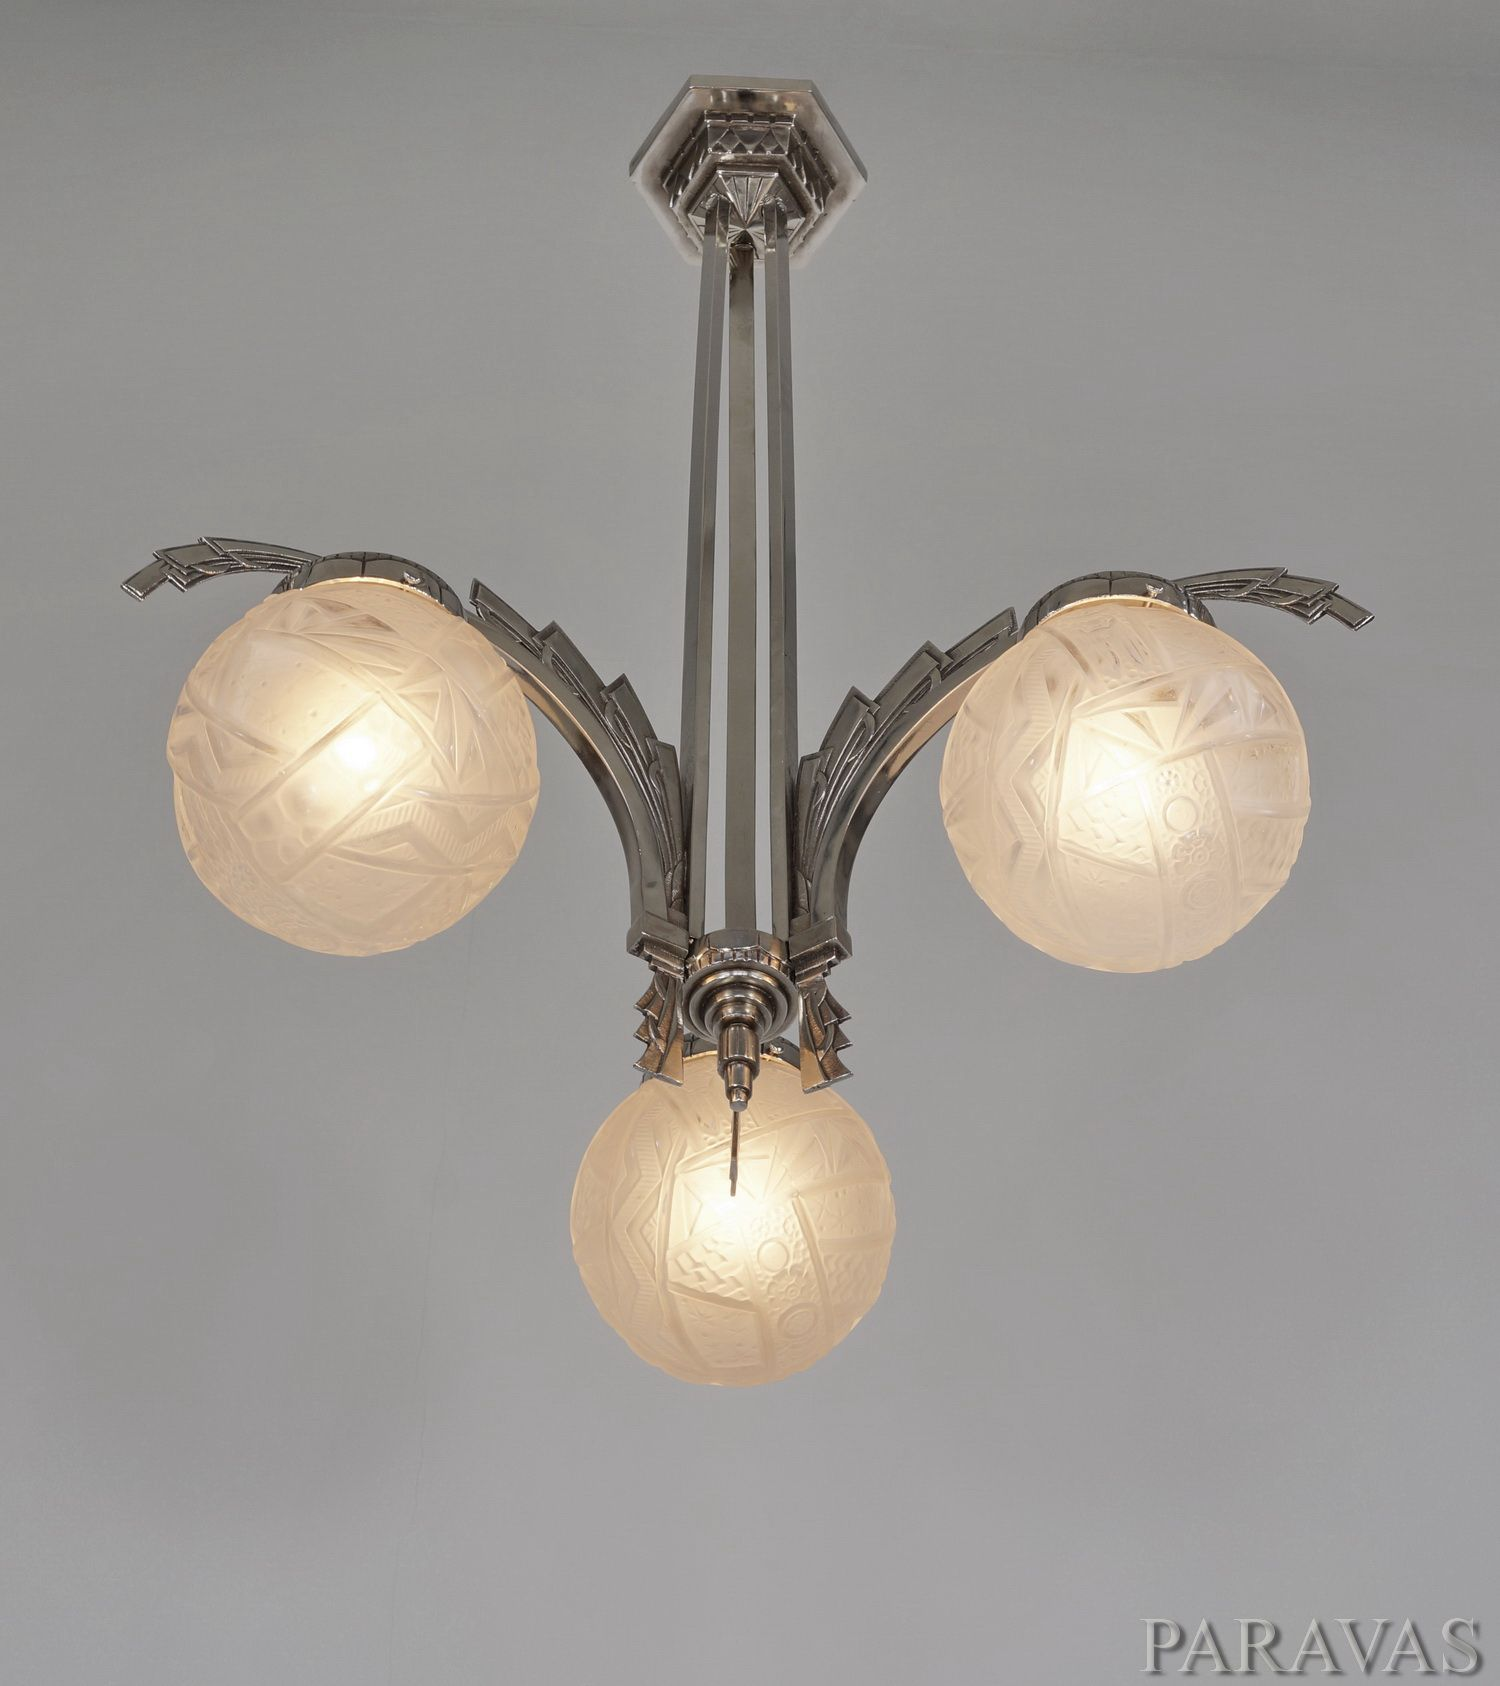 Muller freres: French 1930 art deco chandelier. paravas-ebay